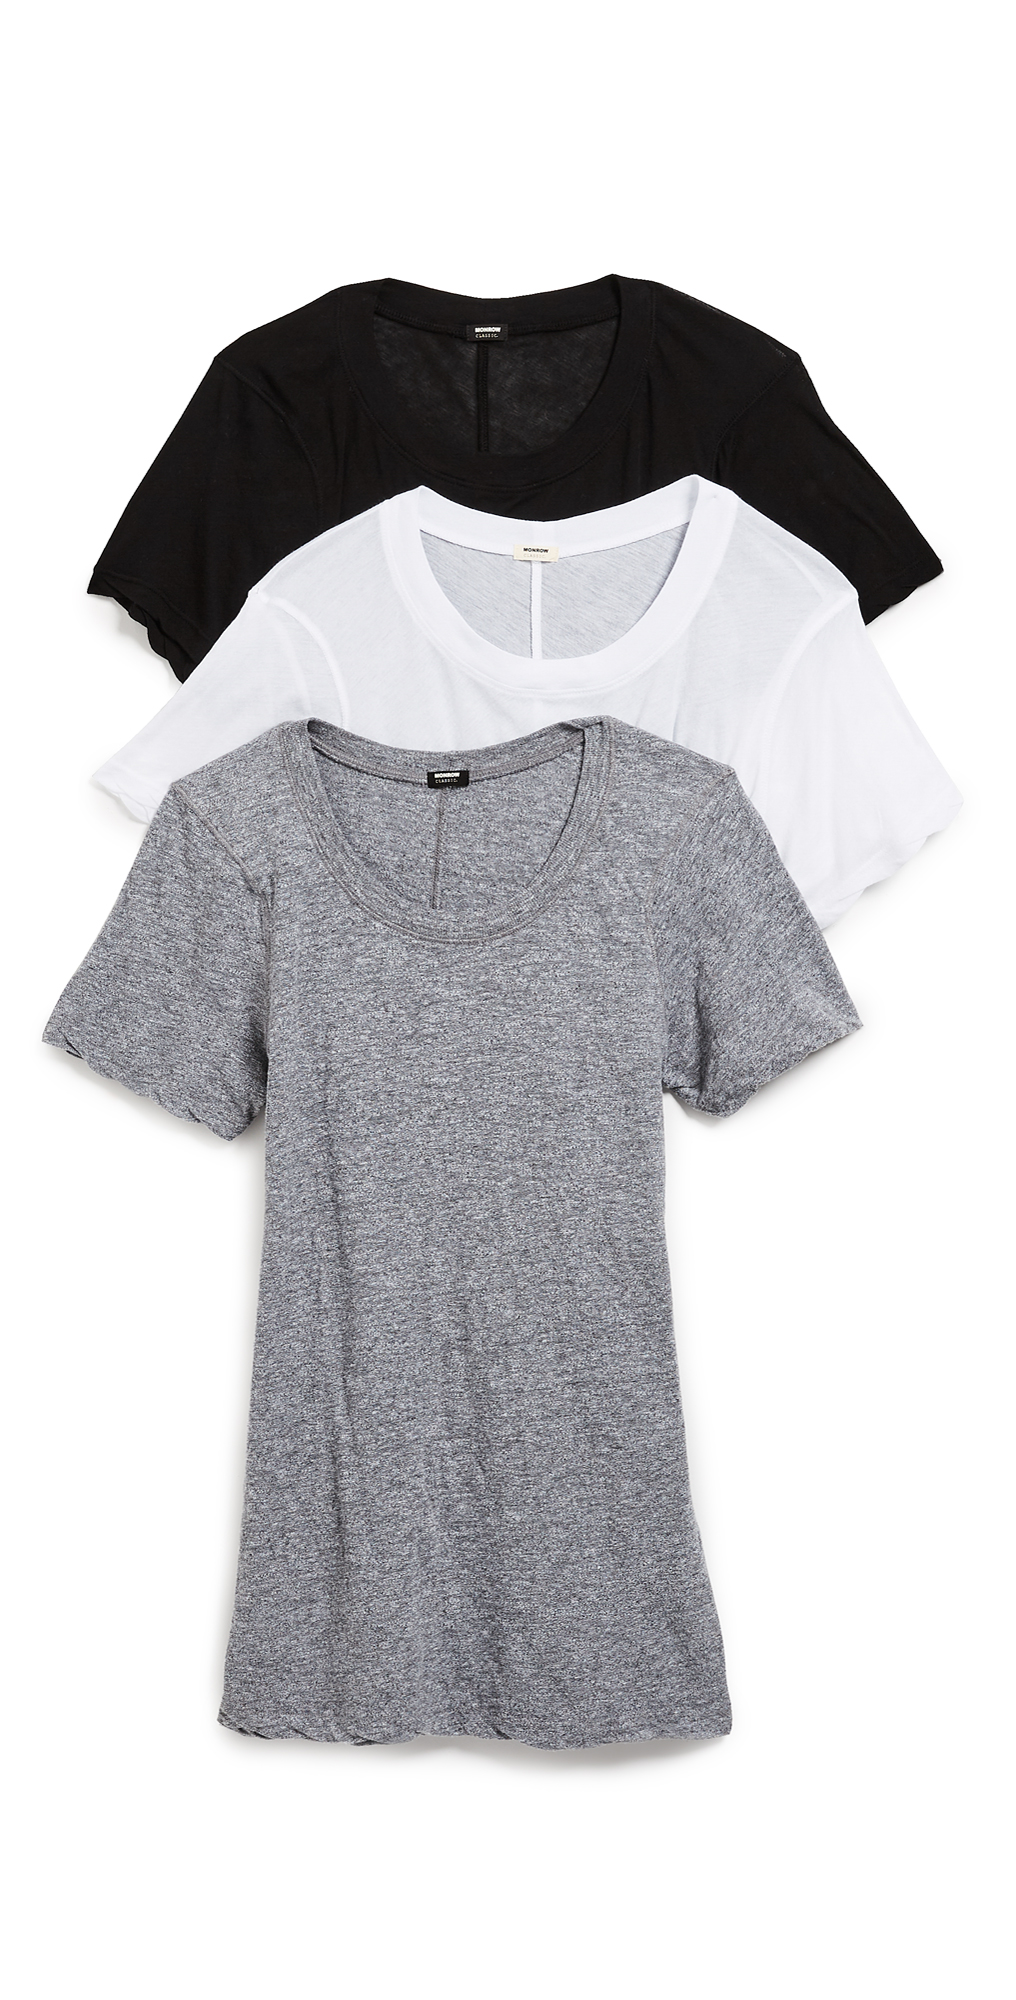 MONROW Crew Neck Tee 3 Pack